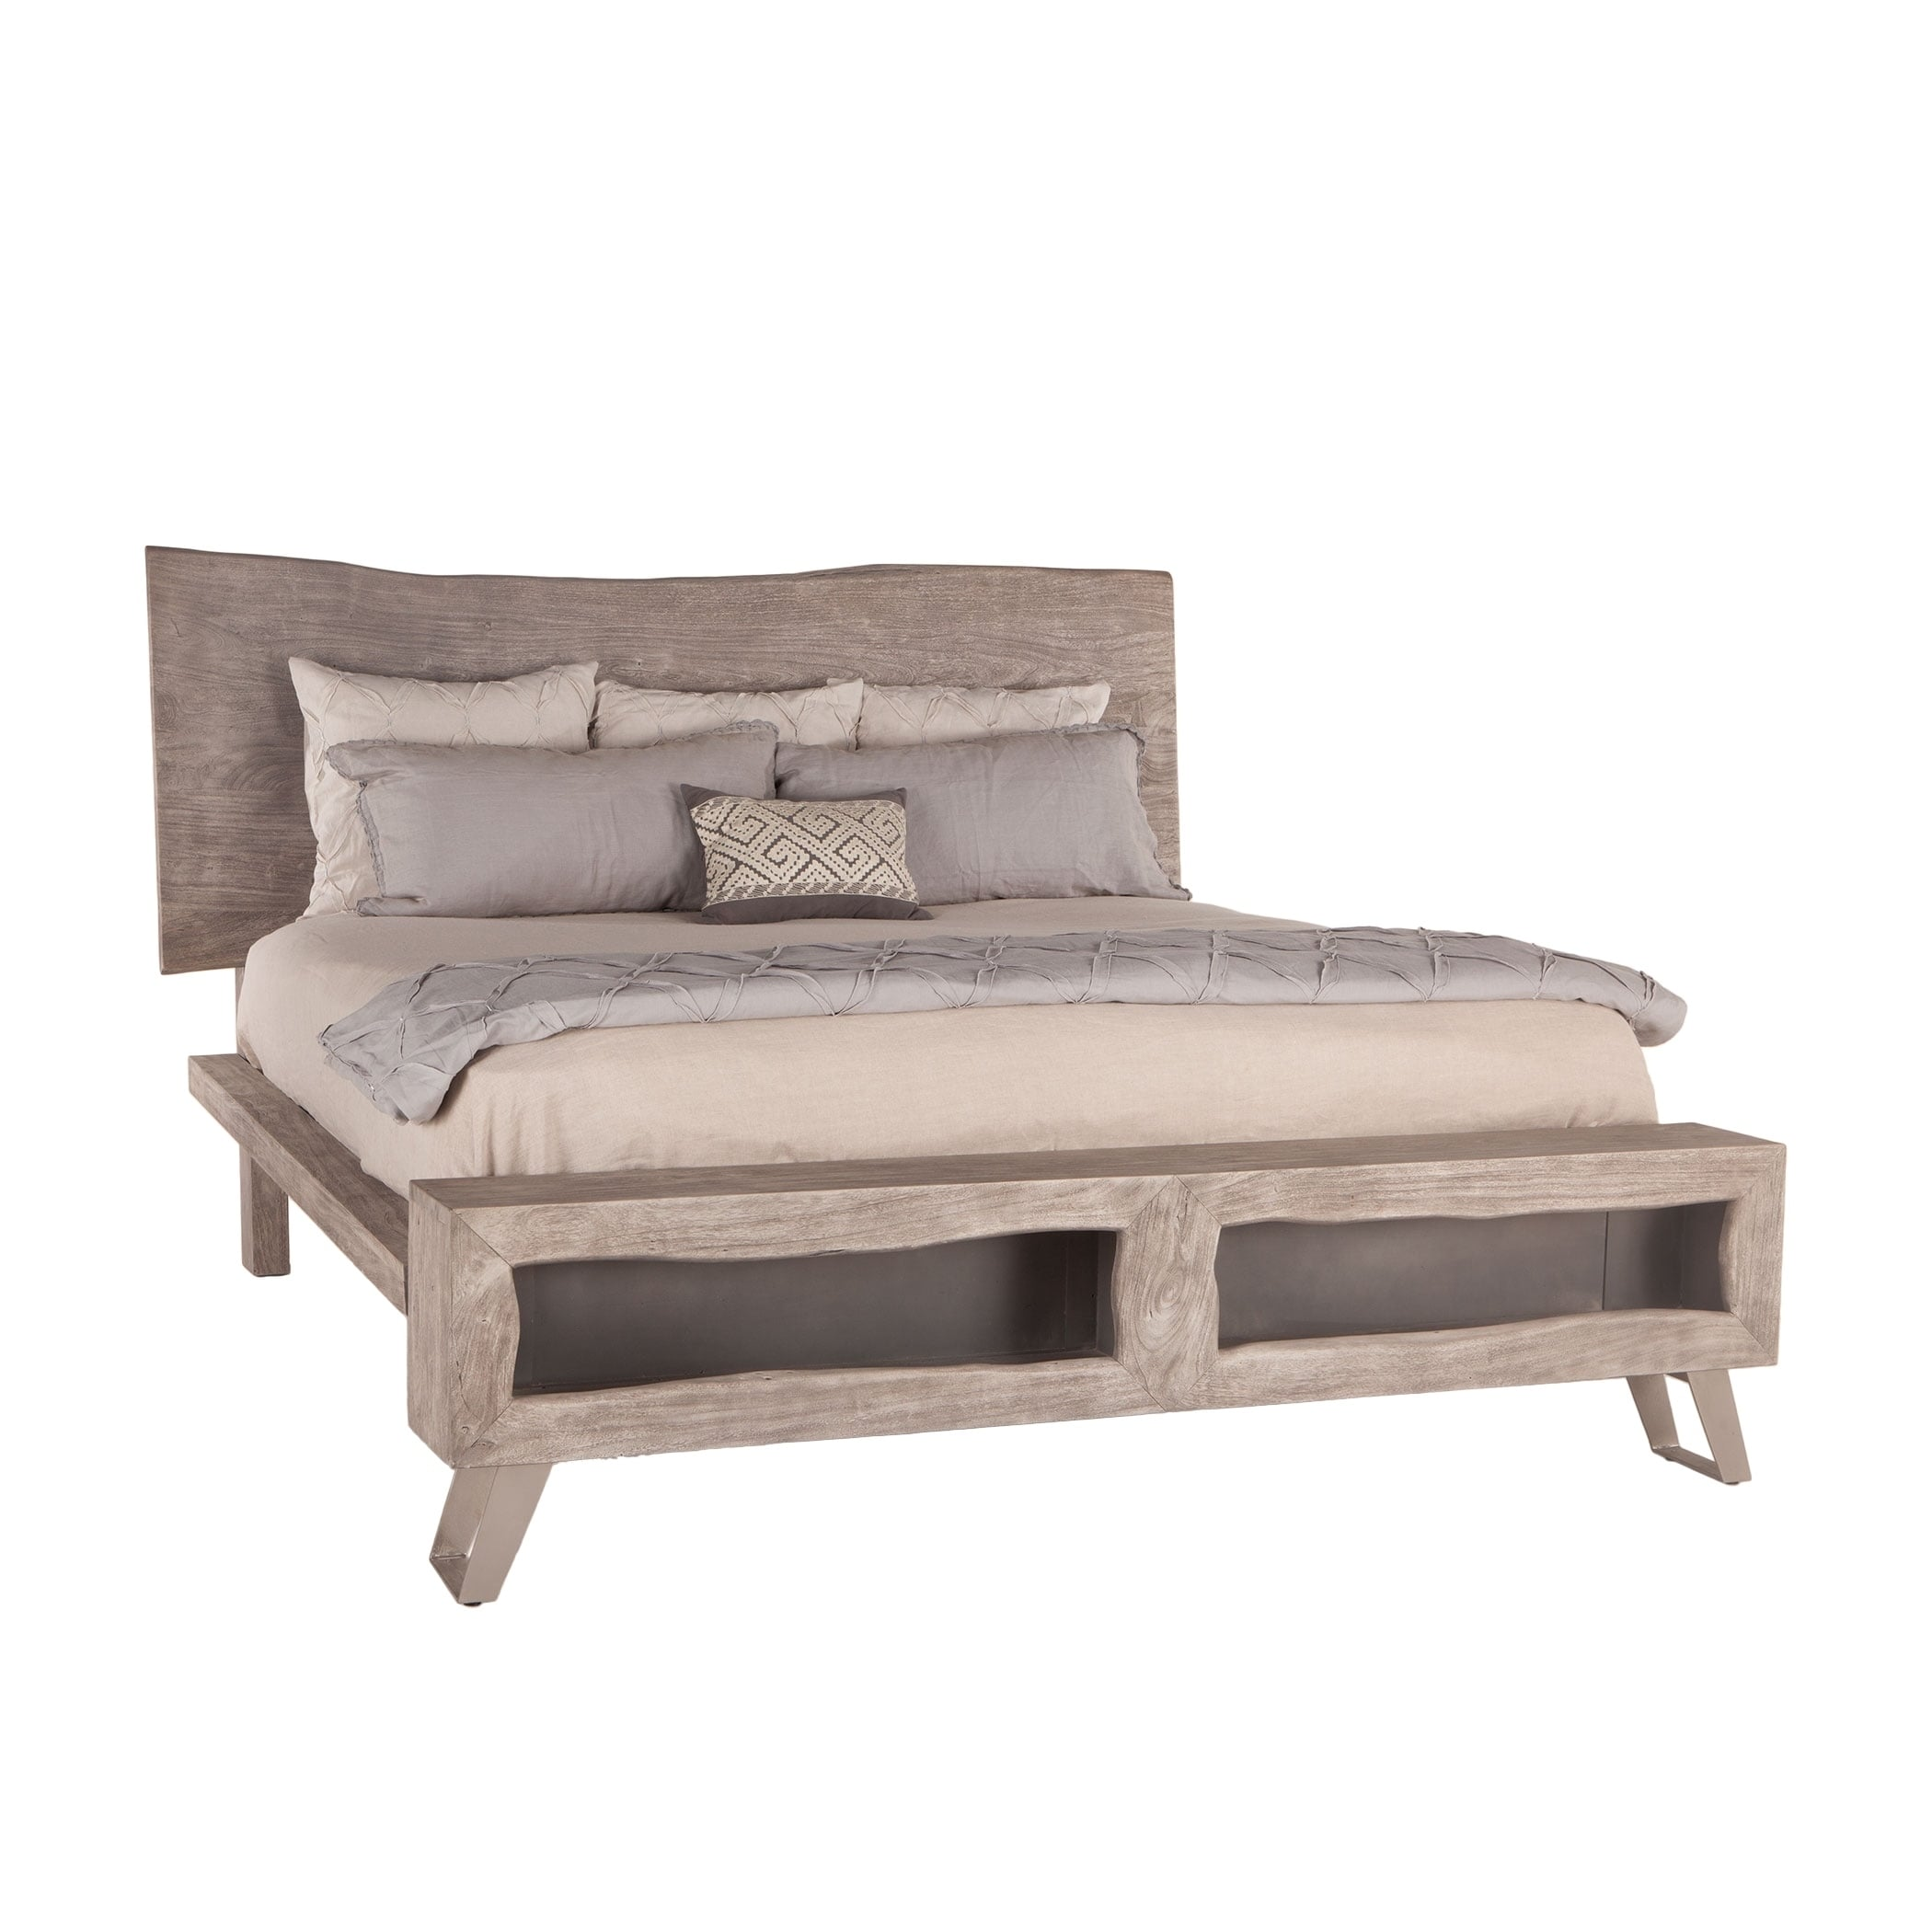 Weathered Gray Acacia Wood Queen Bed